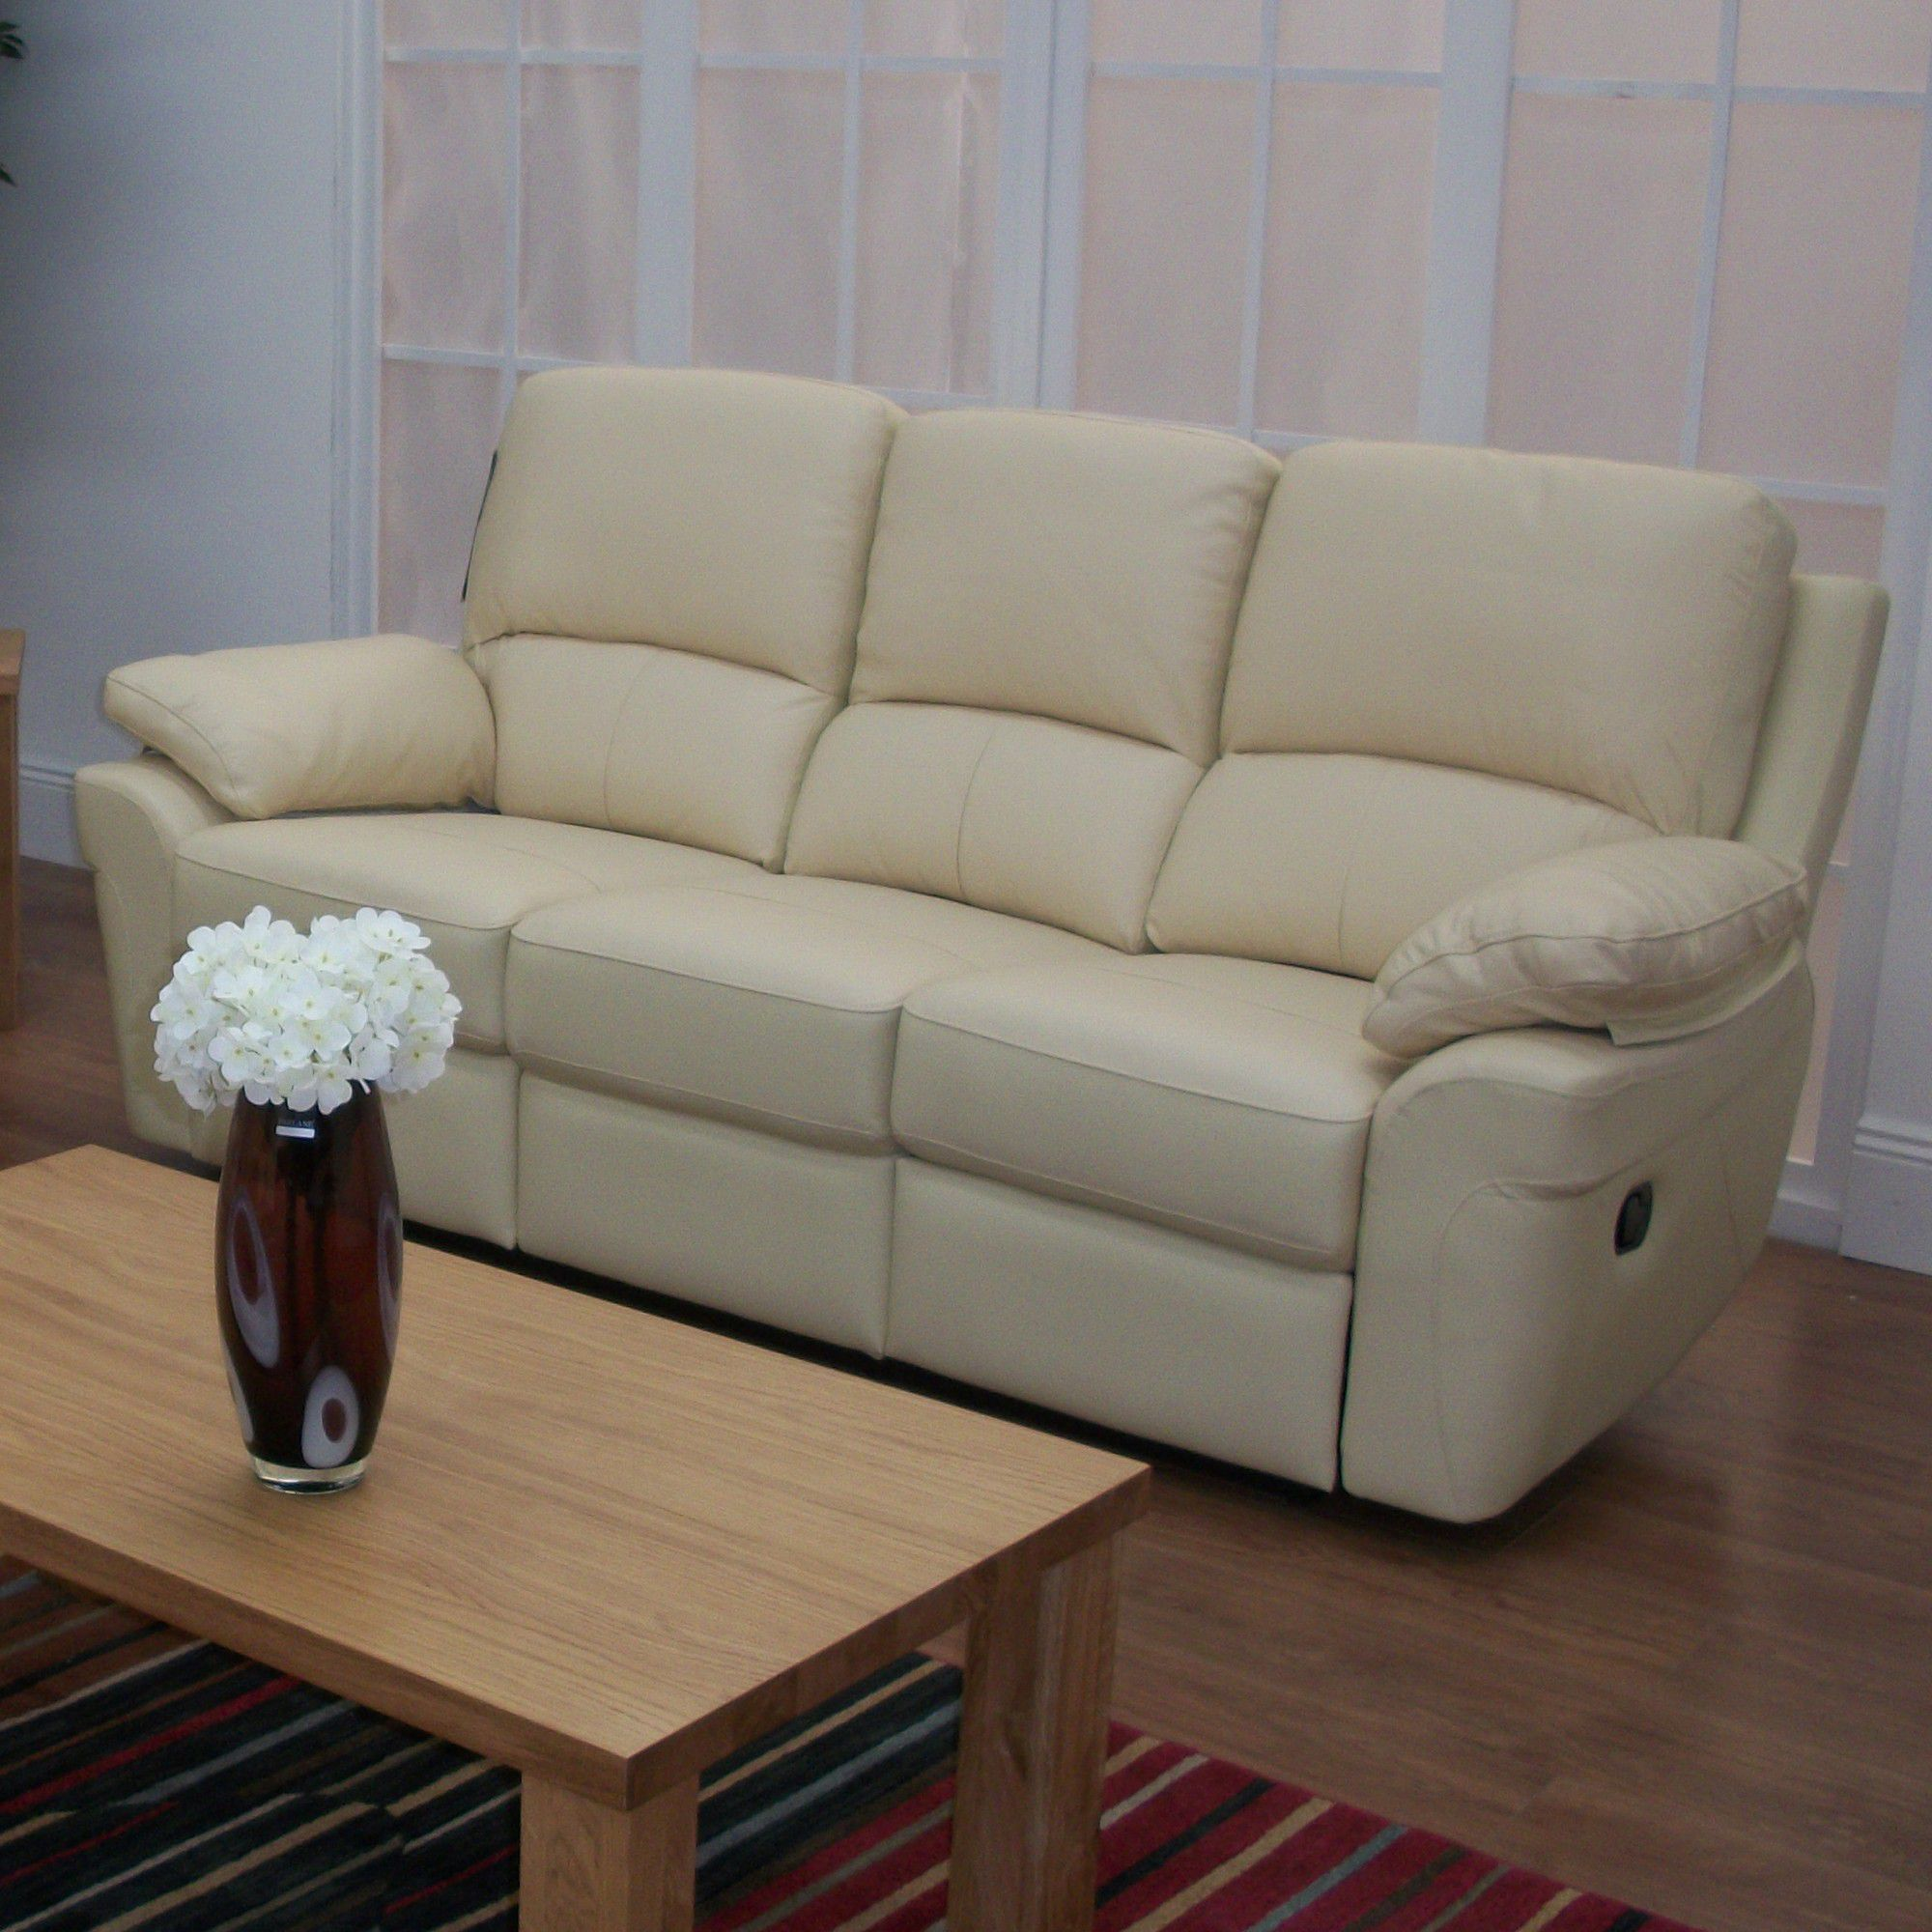 Furniture Link Monzano Three Seat Reclining Sofa in Ivory - Black at Tesco Direct